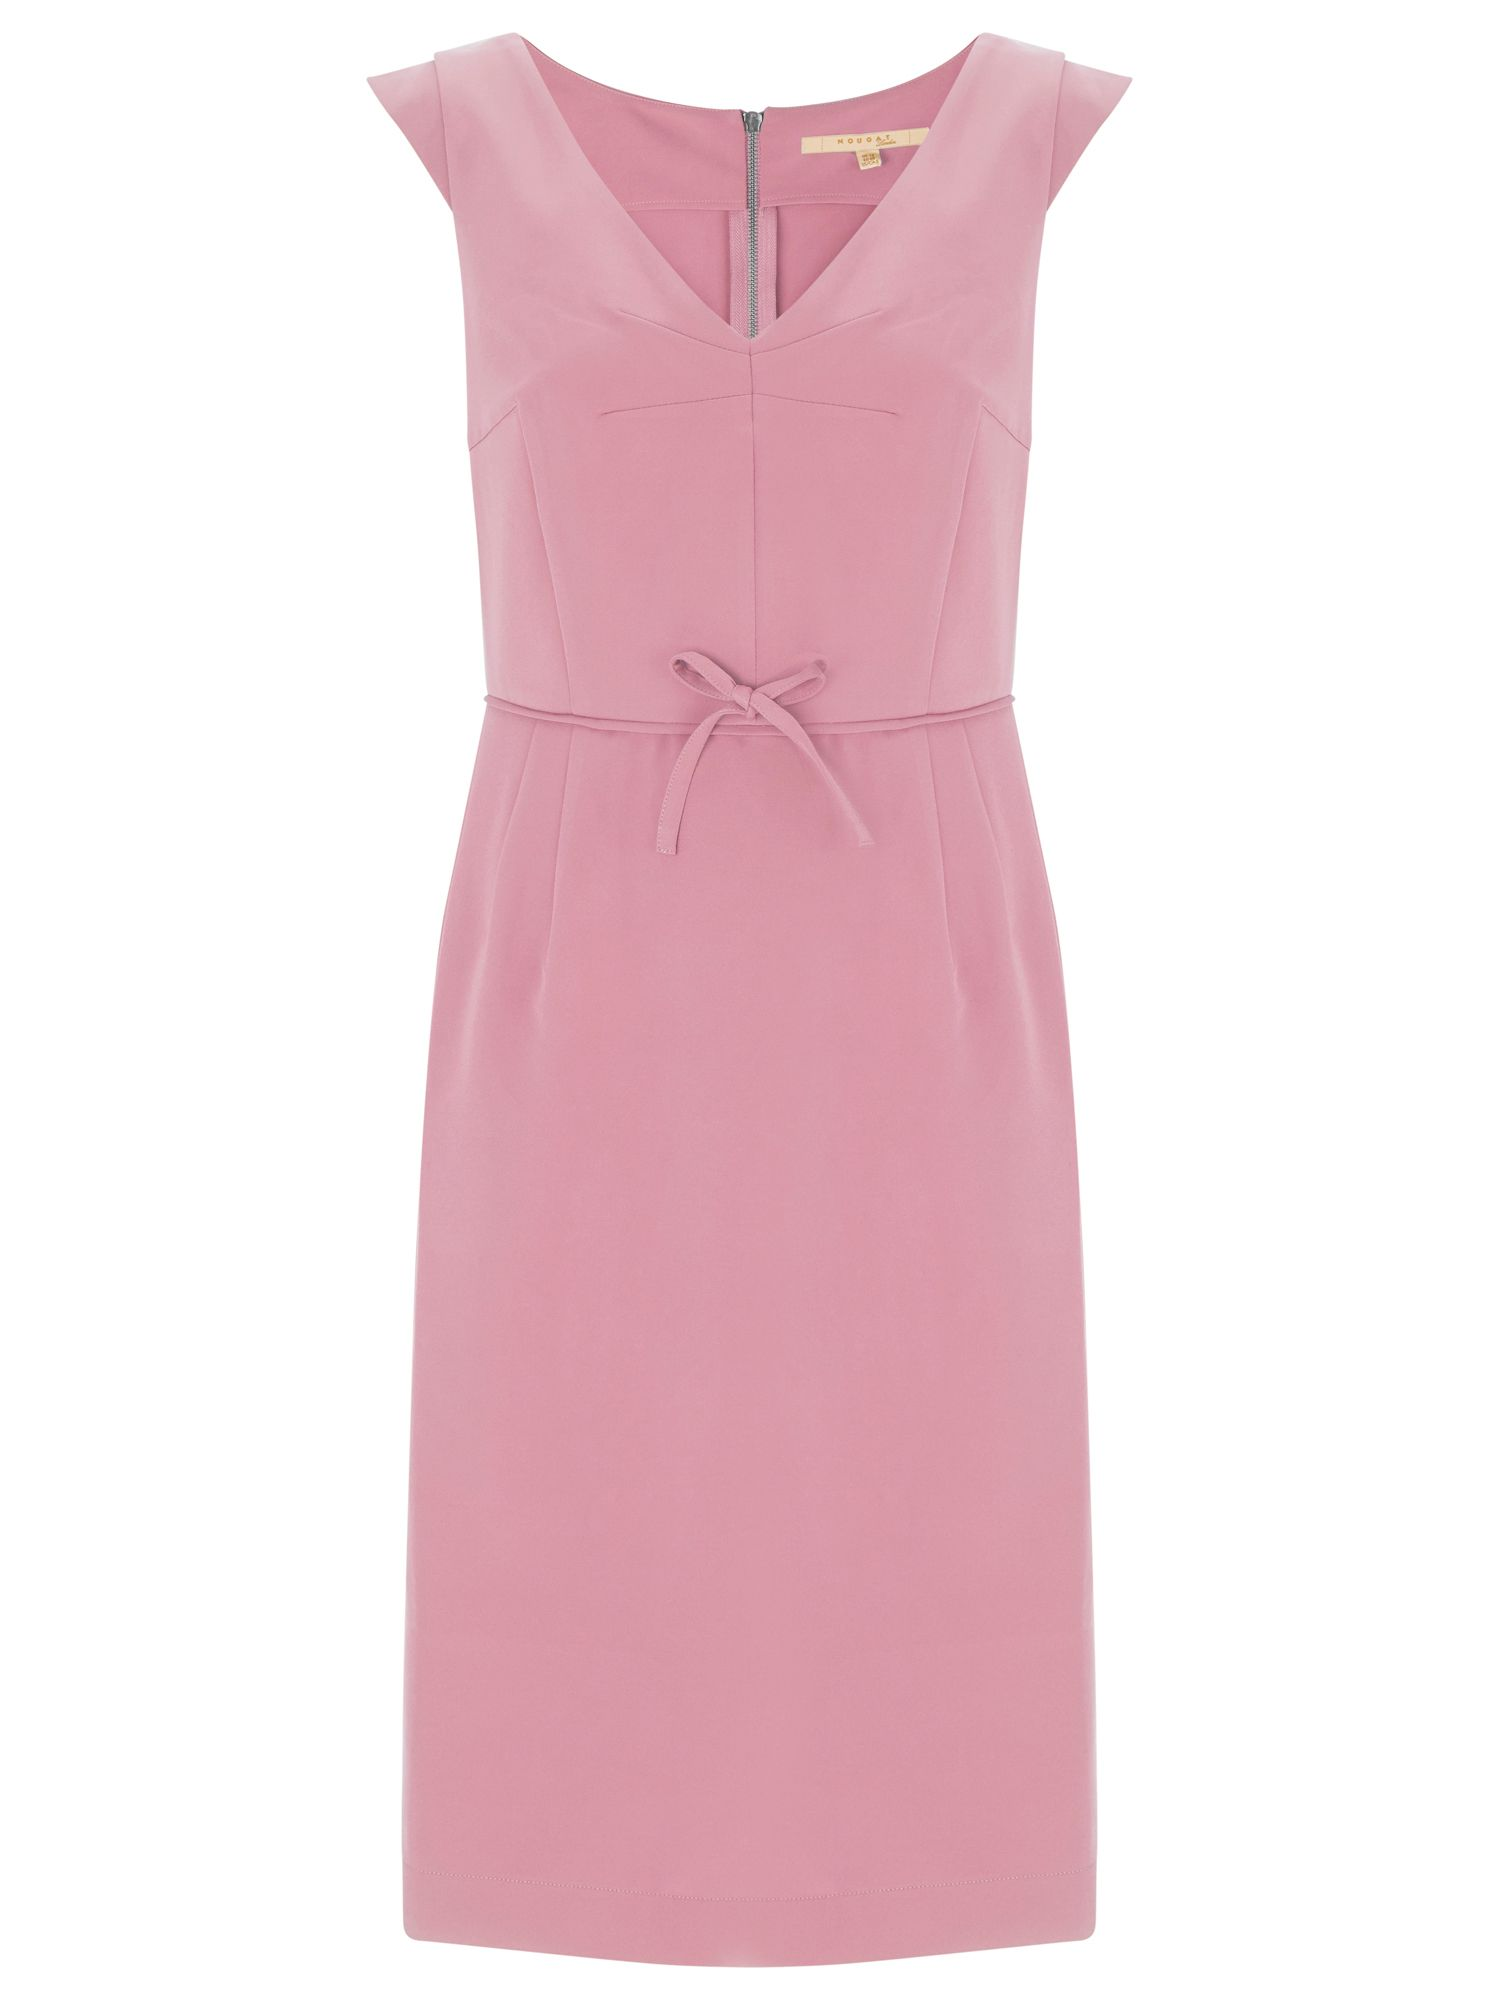 Nougat London Chelsea Cap Sleeve Dress, Pink